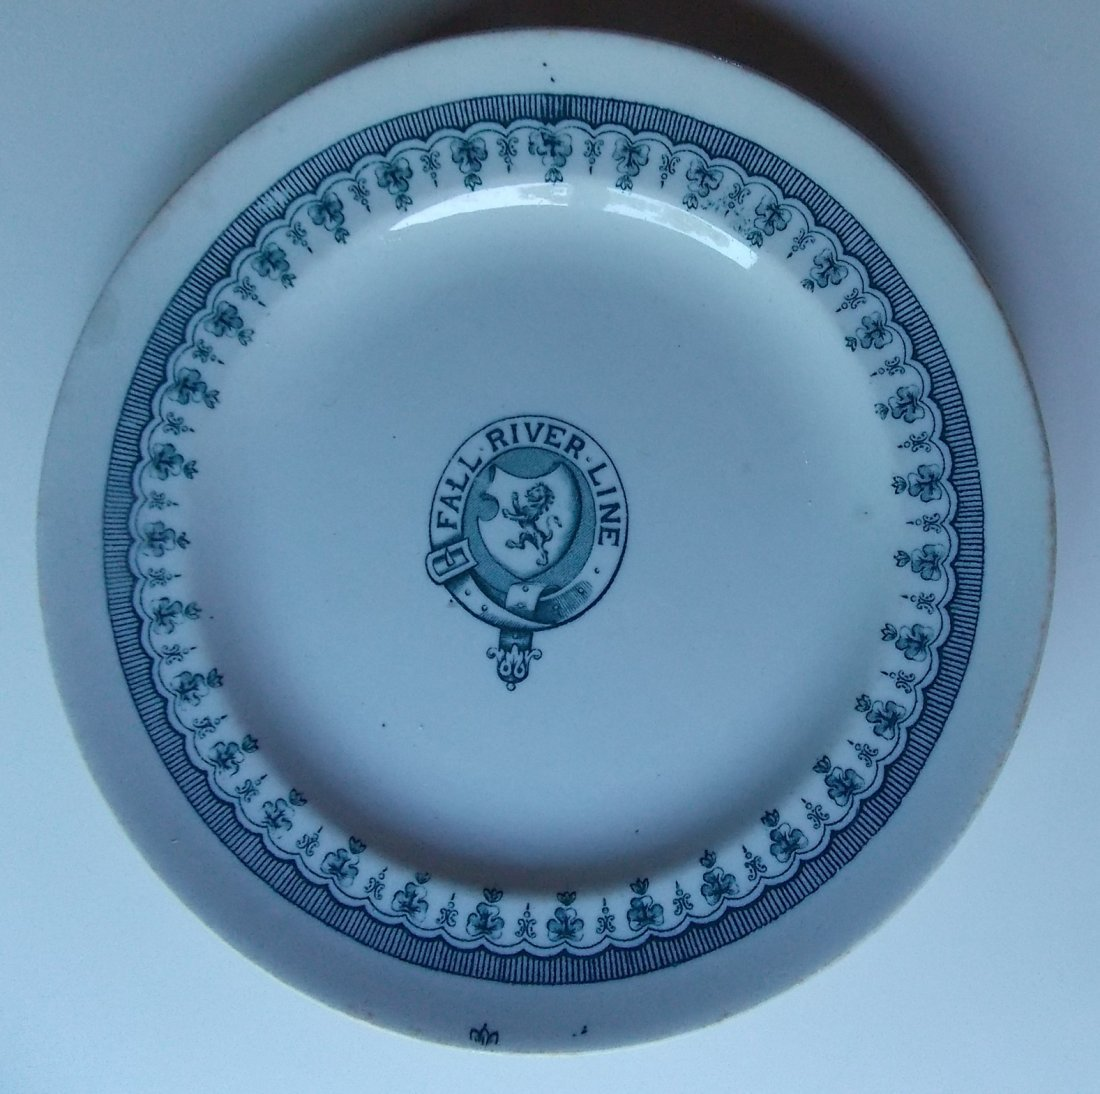 Fall River Line Steamship China Plate